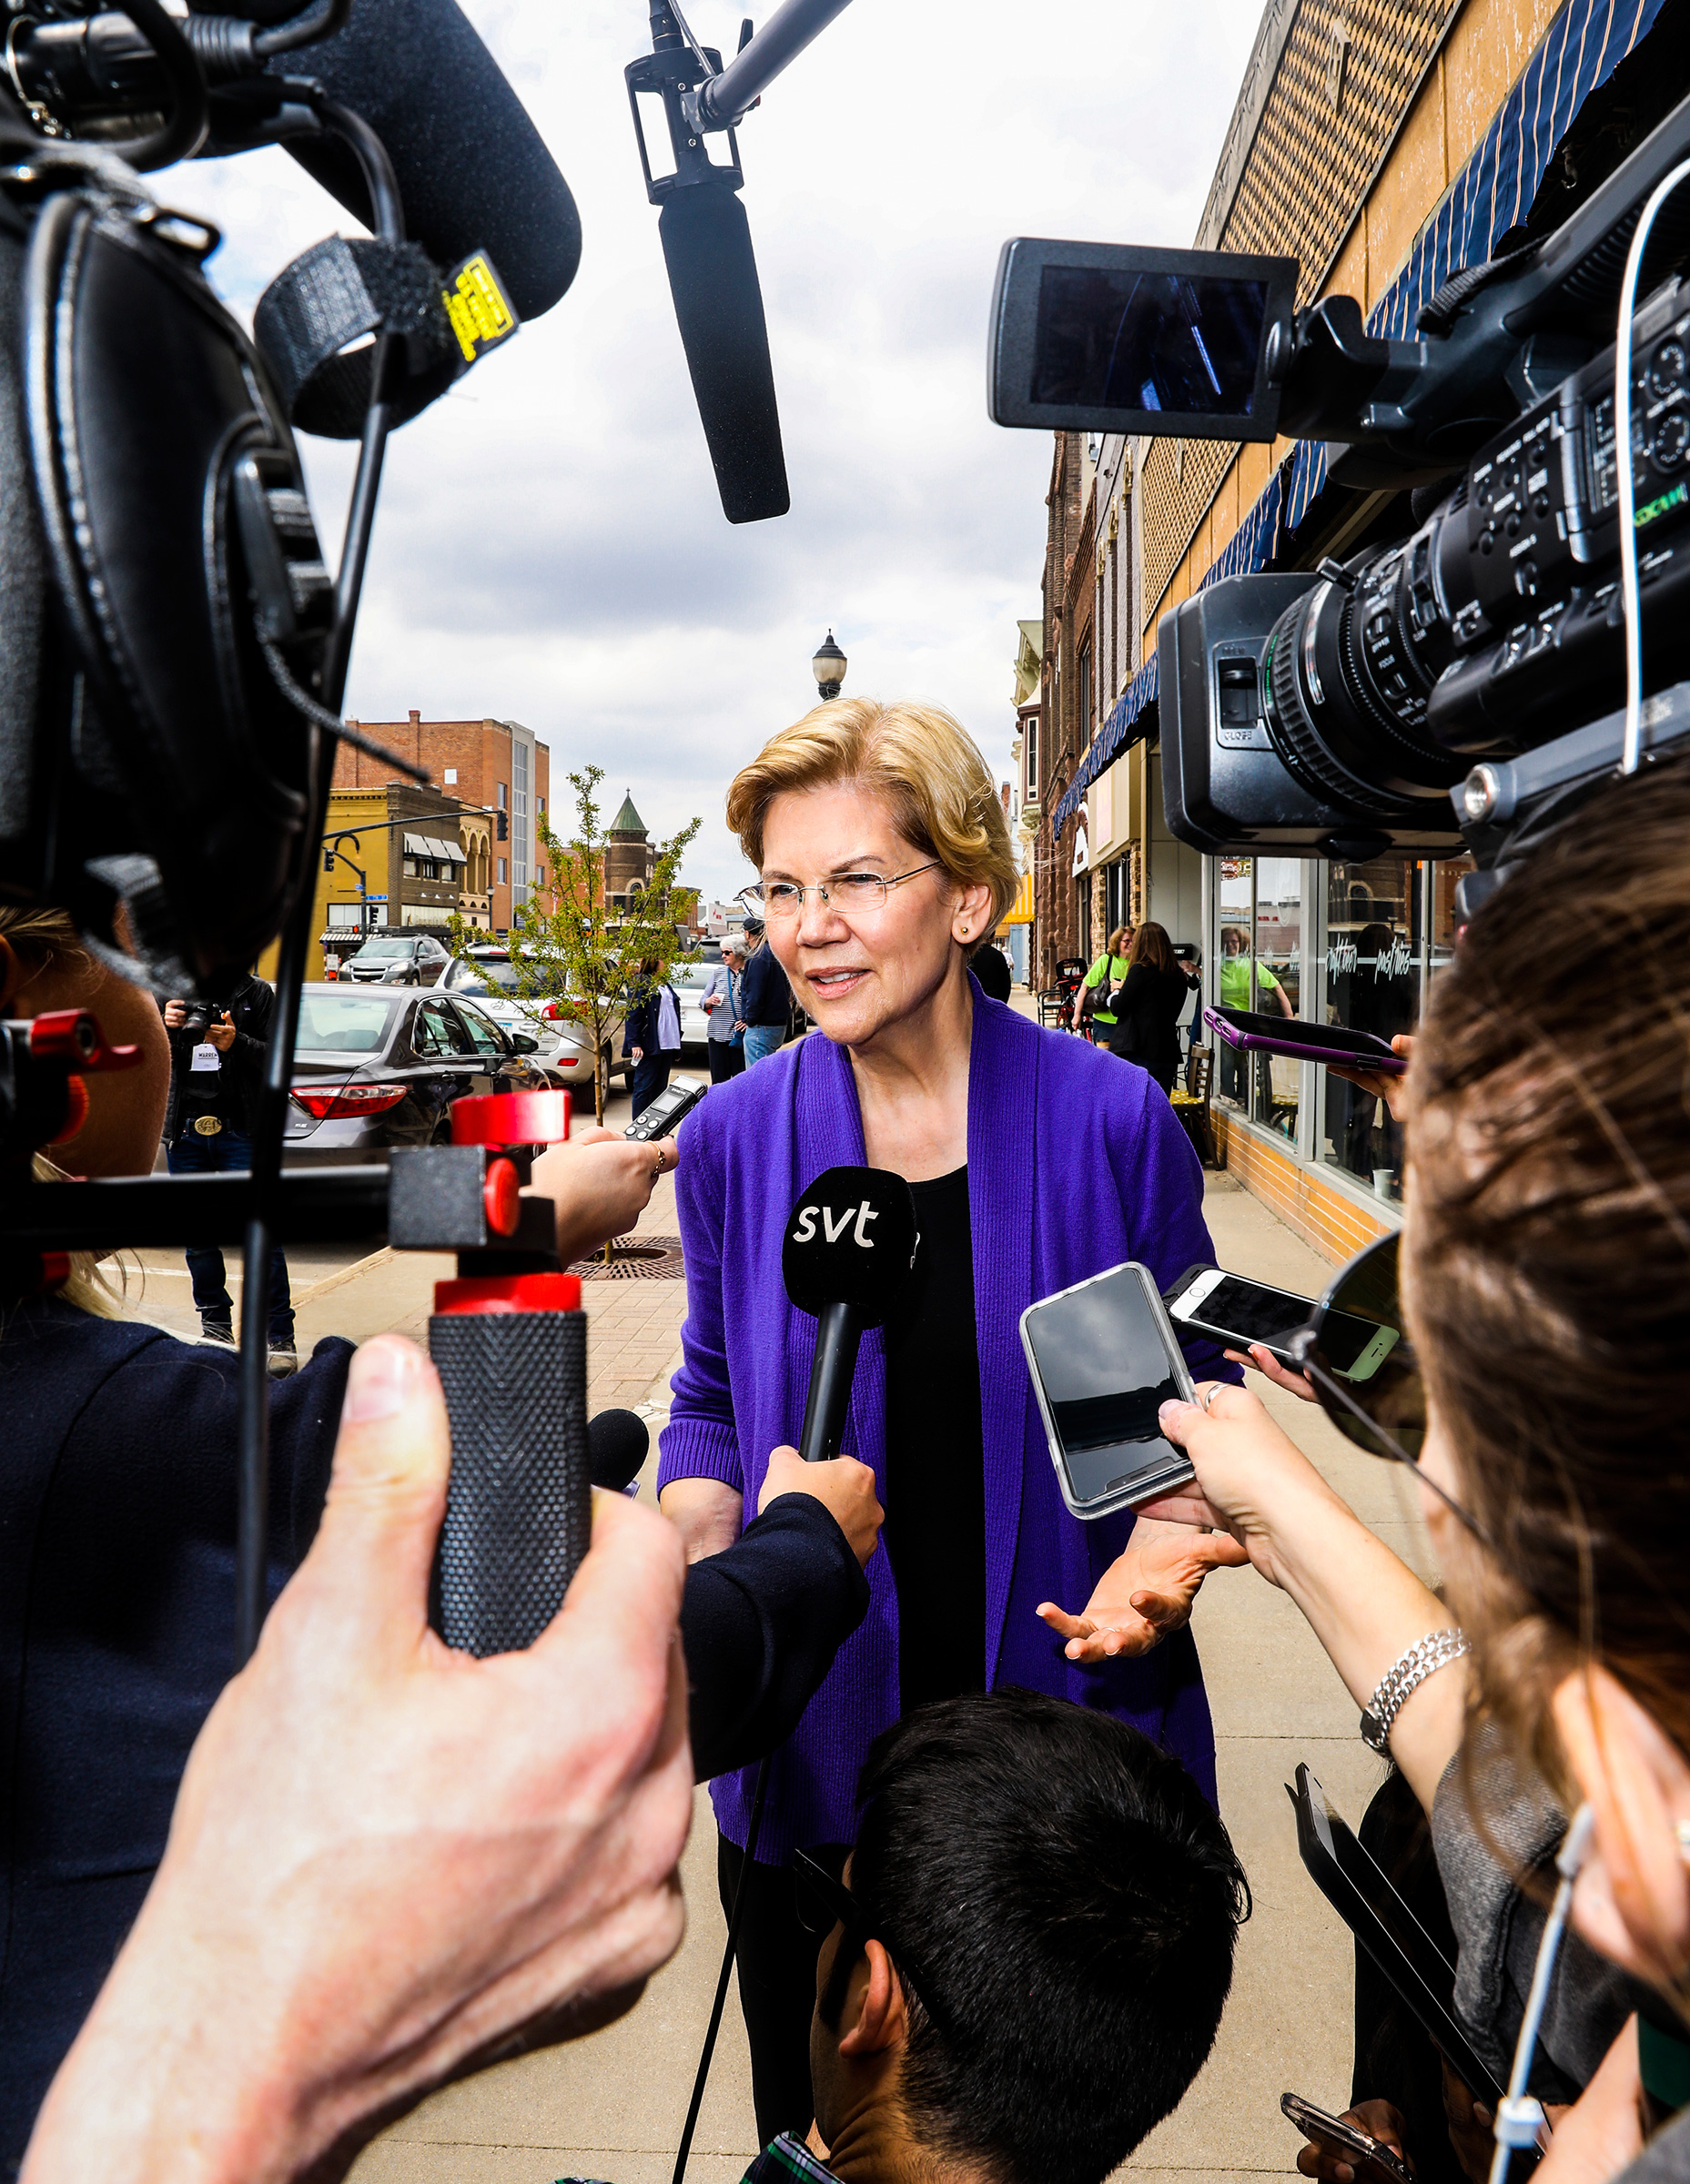 Warren greets members of the press in Osage, Iowa, on May 4.